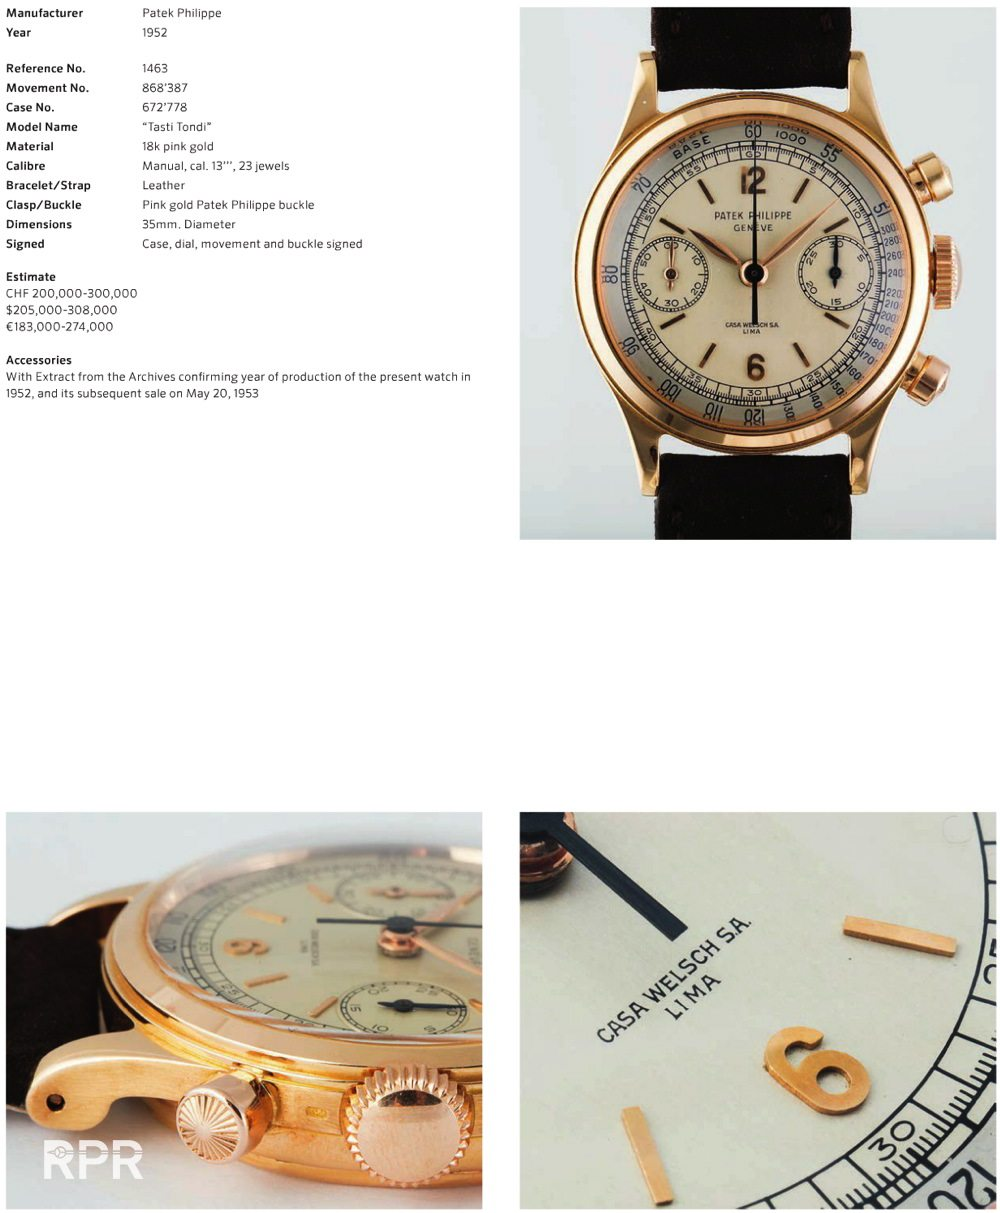 RPR_Rolex_geneva_auction_2015_15